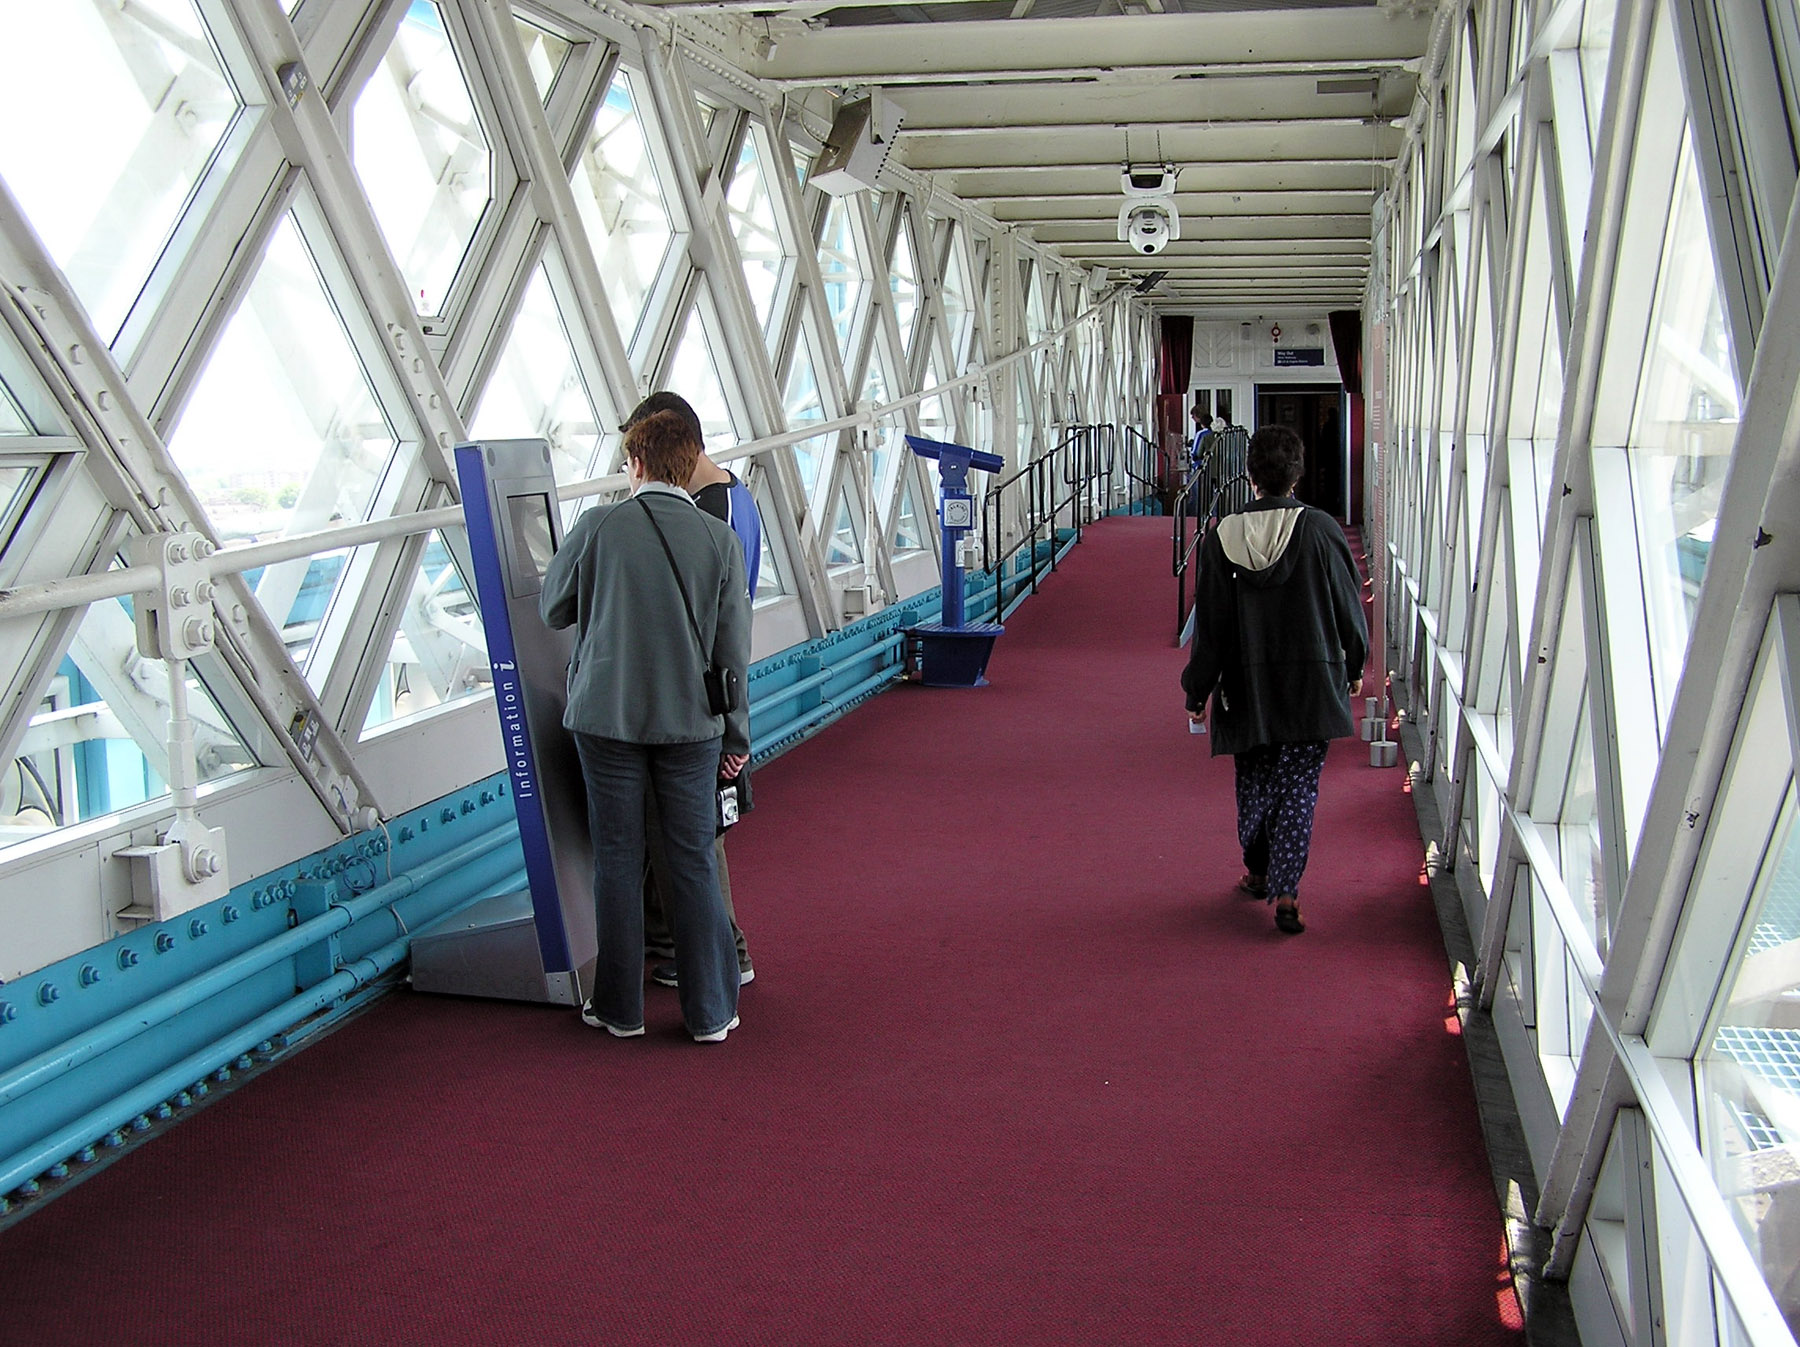 Tower.bridge.9.walkwaysinterior.london.arp.jpg